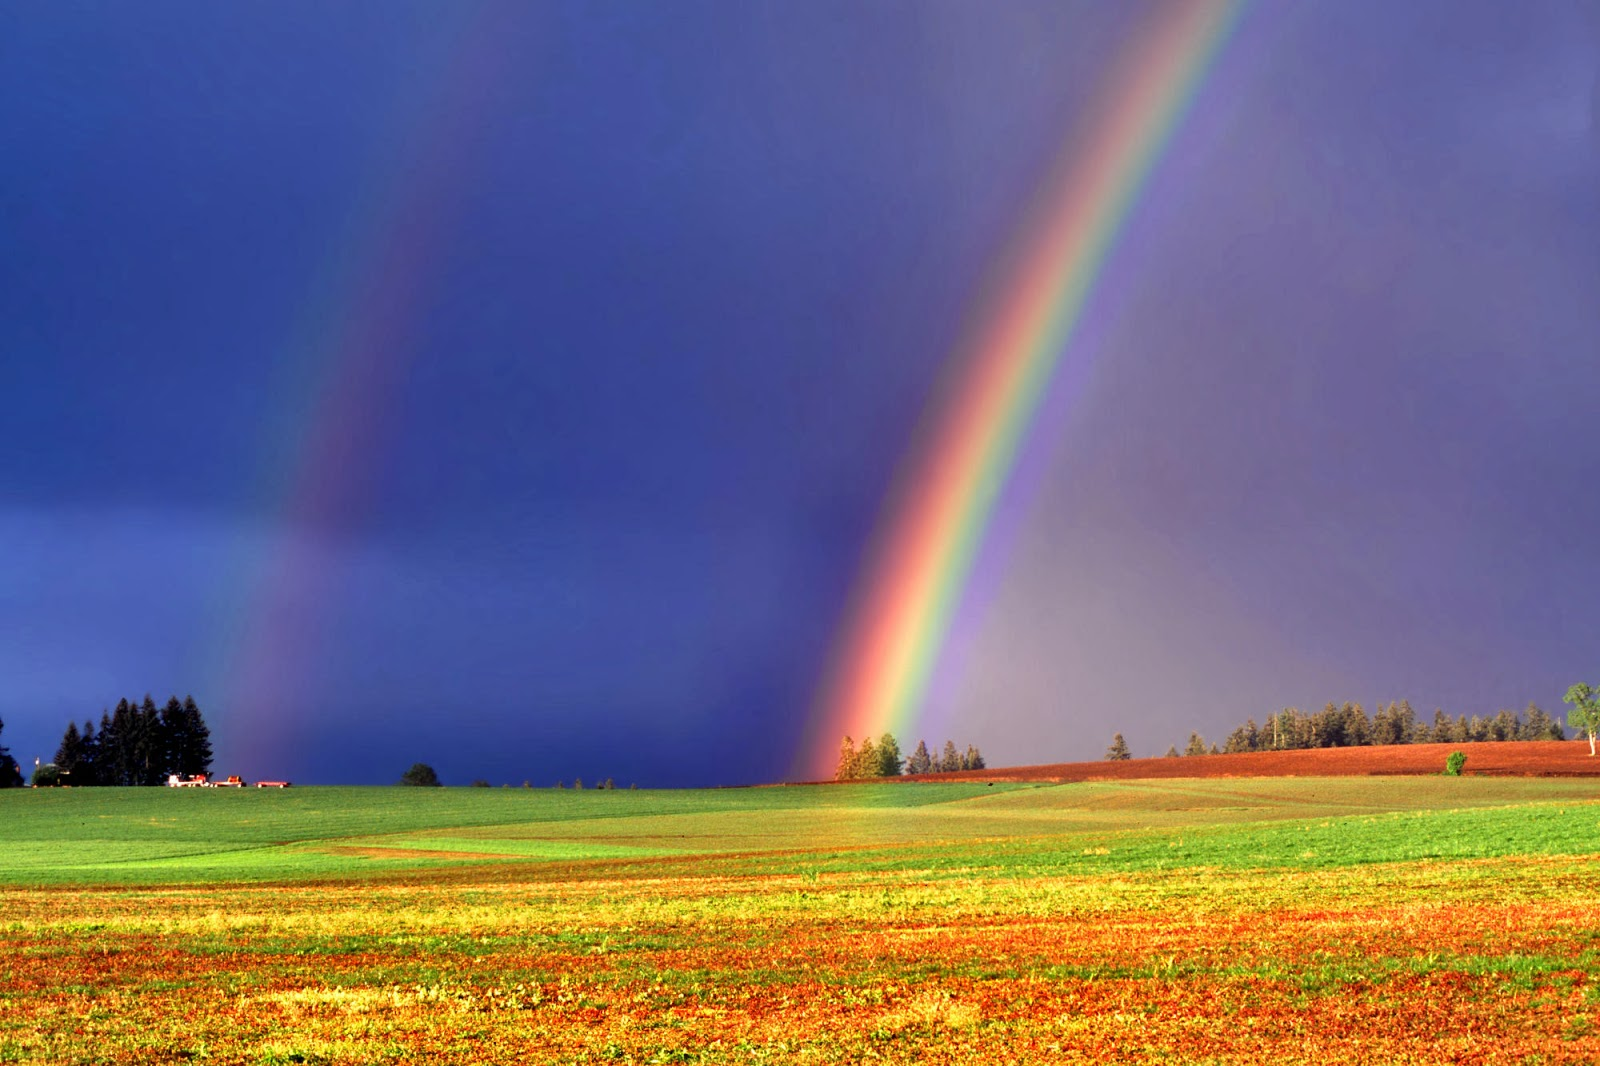 Download Rainbow Wallpapers | Most beautiful places in the ... Rainbowsol